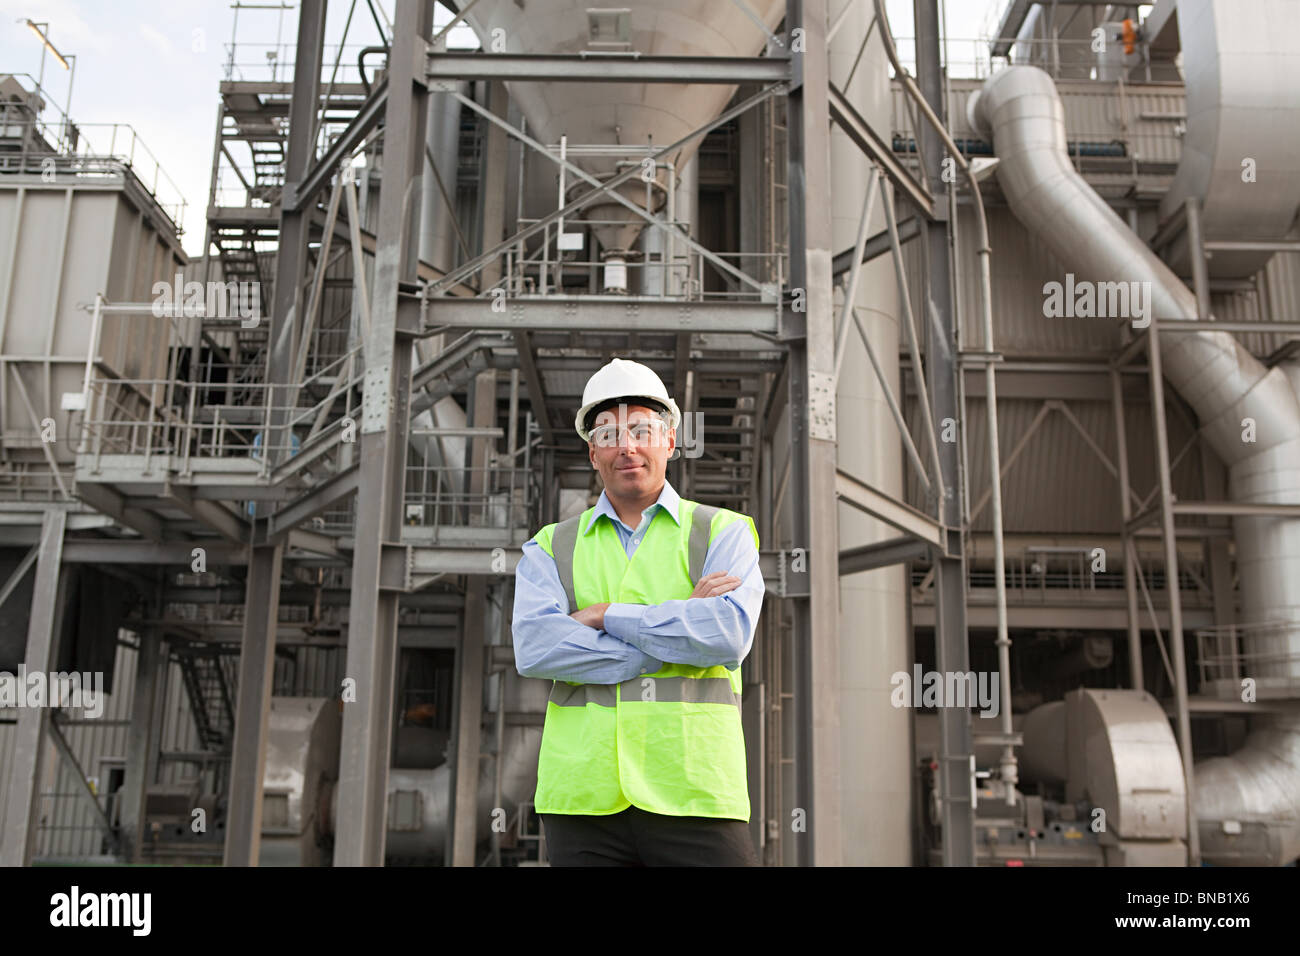 Engineer outside factory - Stock Image